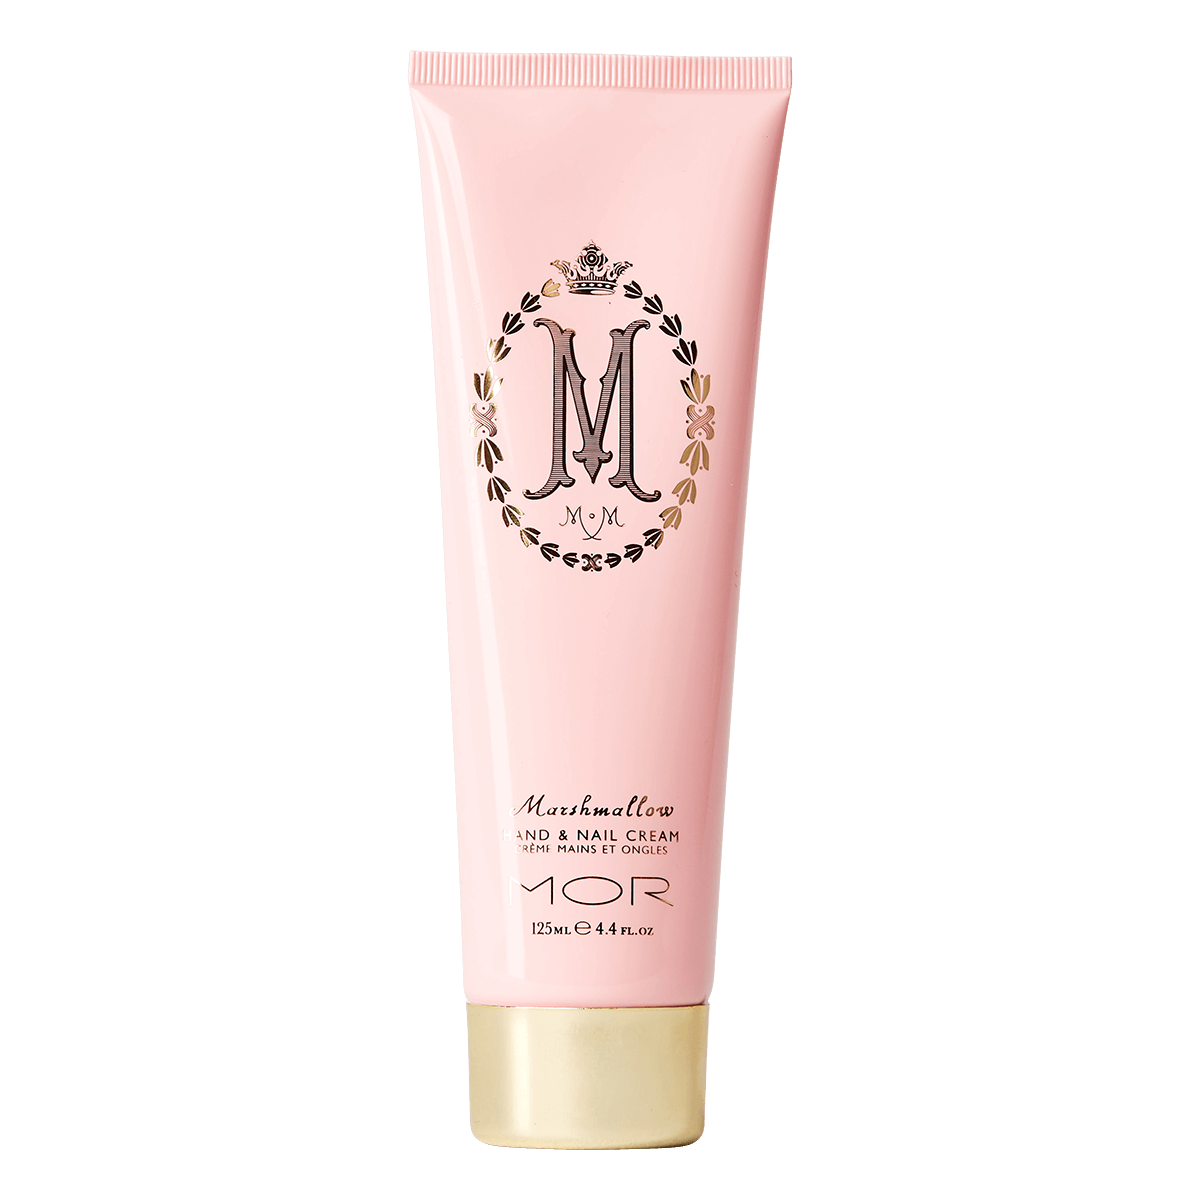 Mor - Hand & Nail Cream Marshmallow 125ml